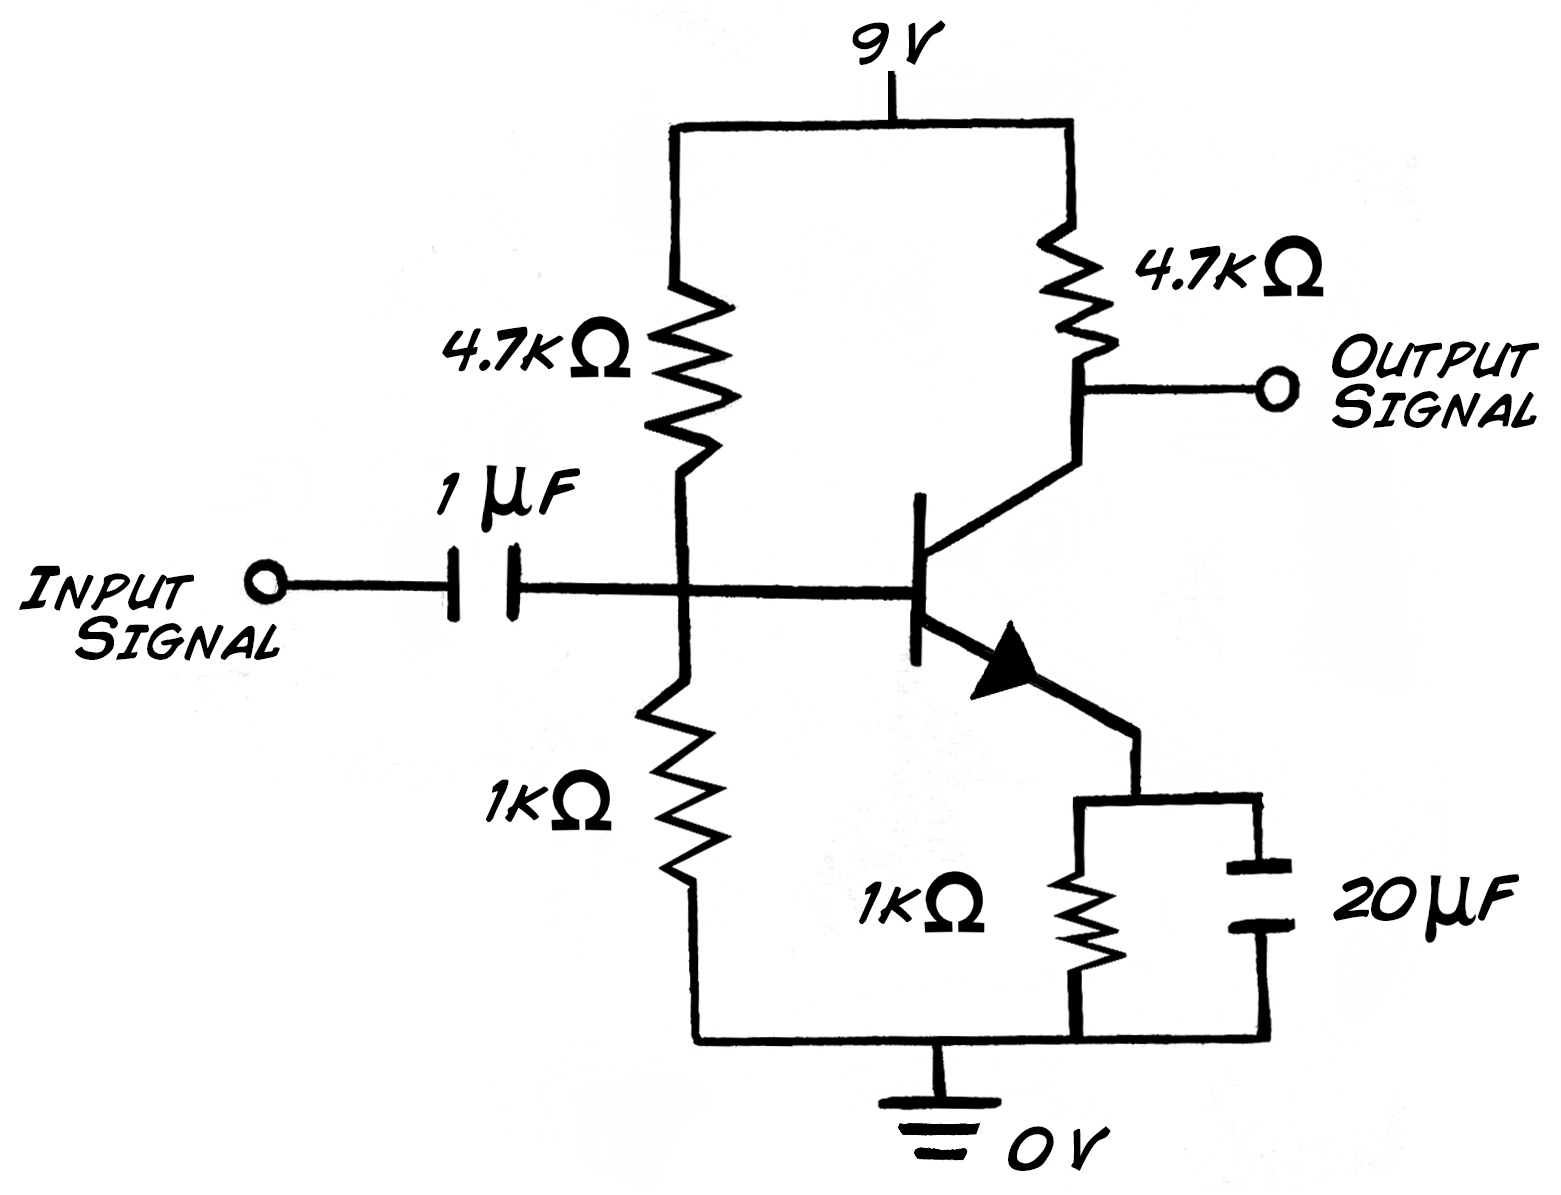 Experiment Transistor Circuit Design Diagram Using Logic Gates